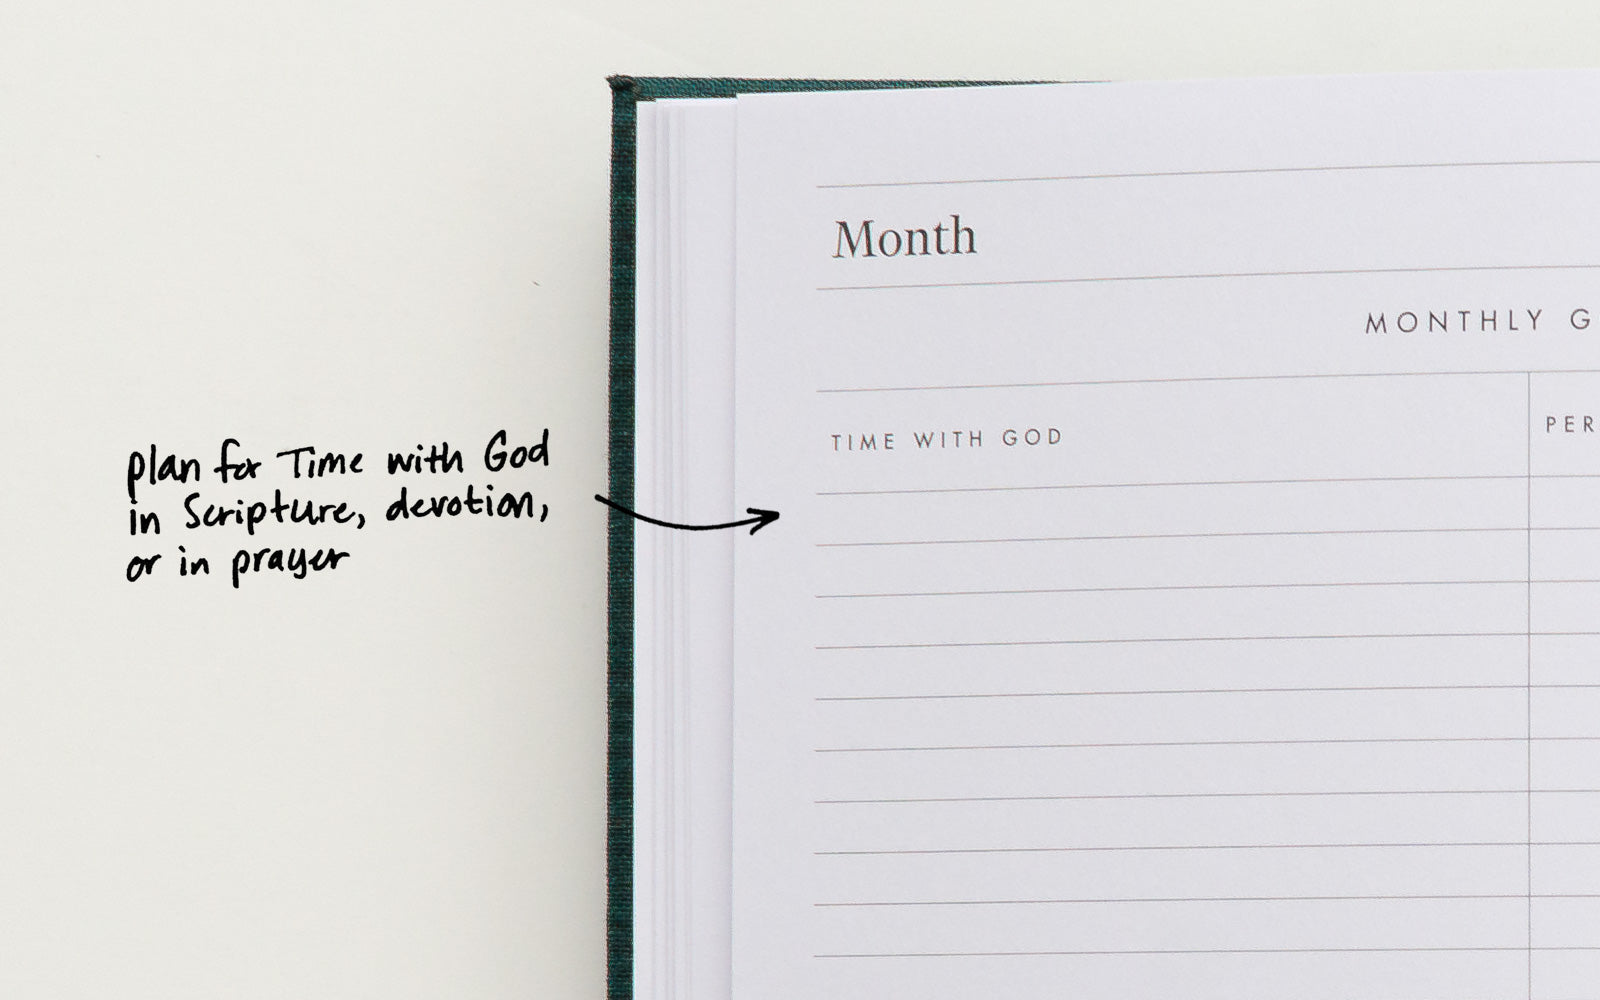 Plan for Time with God in Scripture, devotion, or in prayer